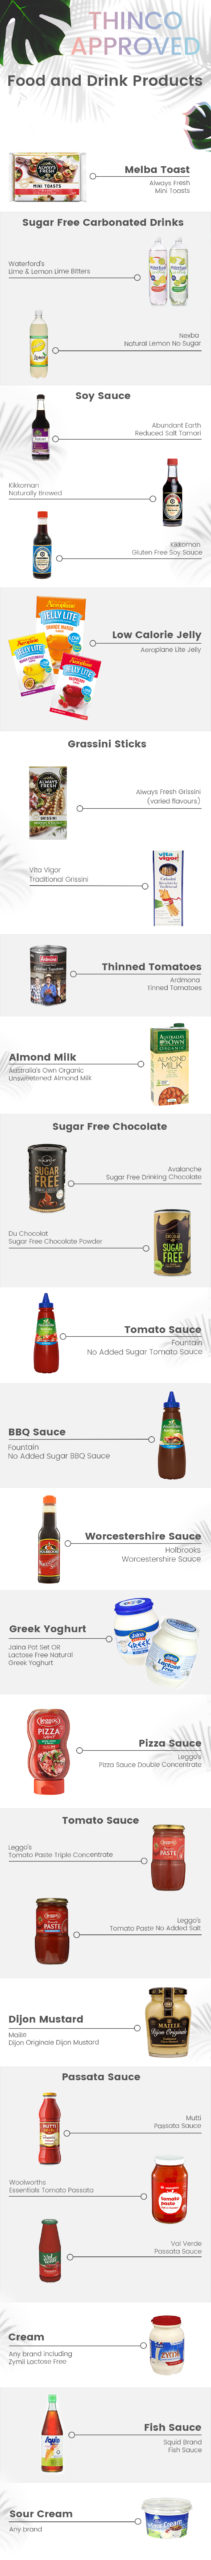 Thinco-Approved-Food-and-Drink-Products-v2